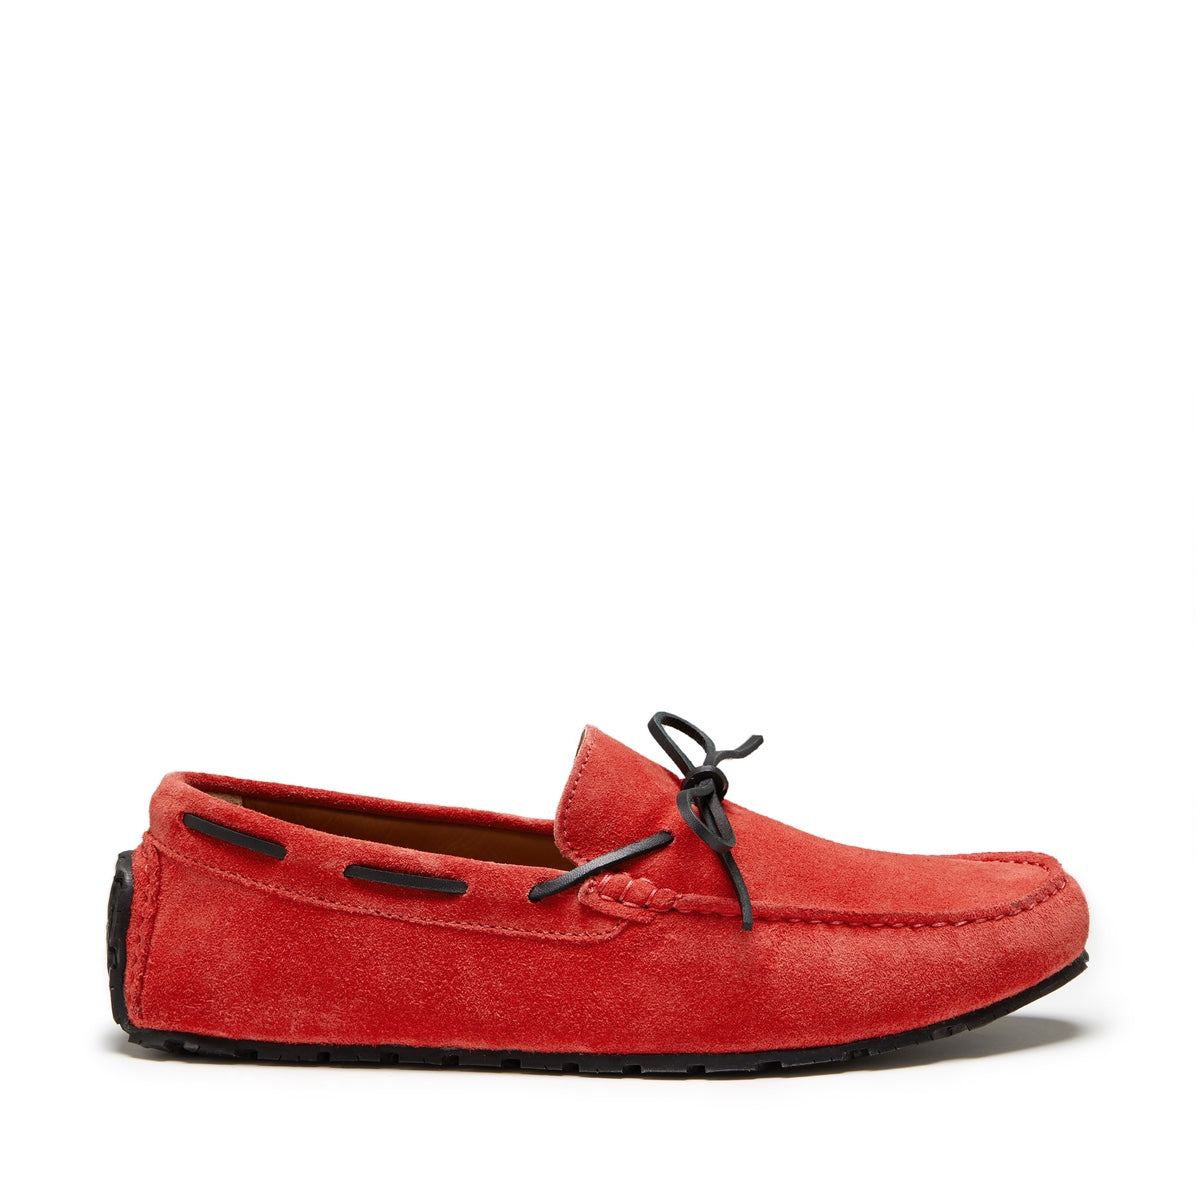 Tyre Sole Laced Driving Loafers, red suede